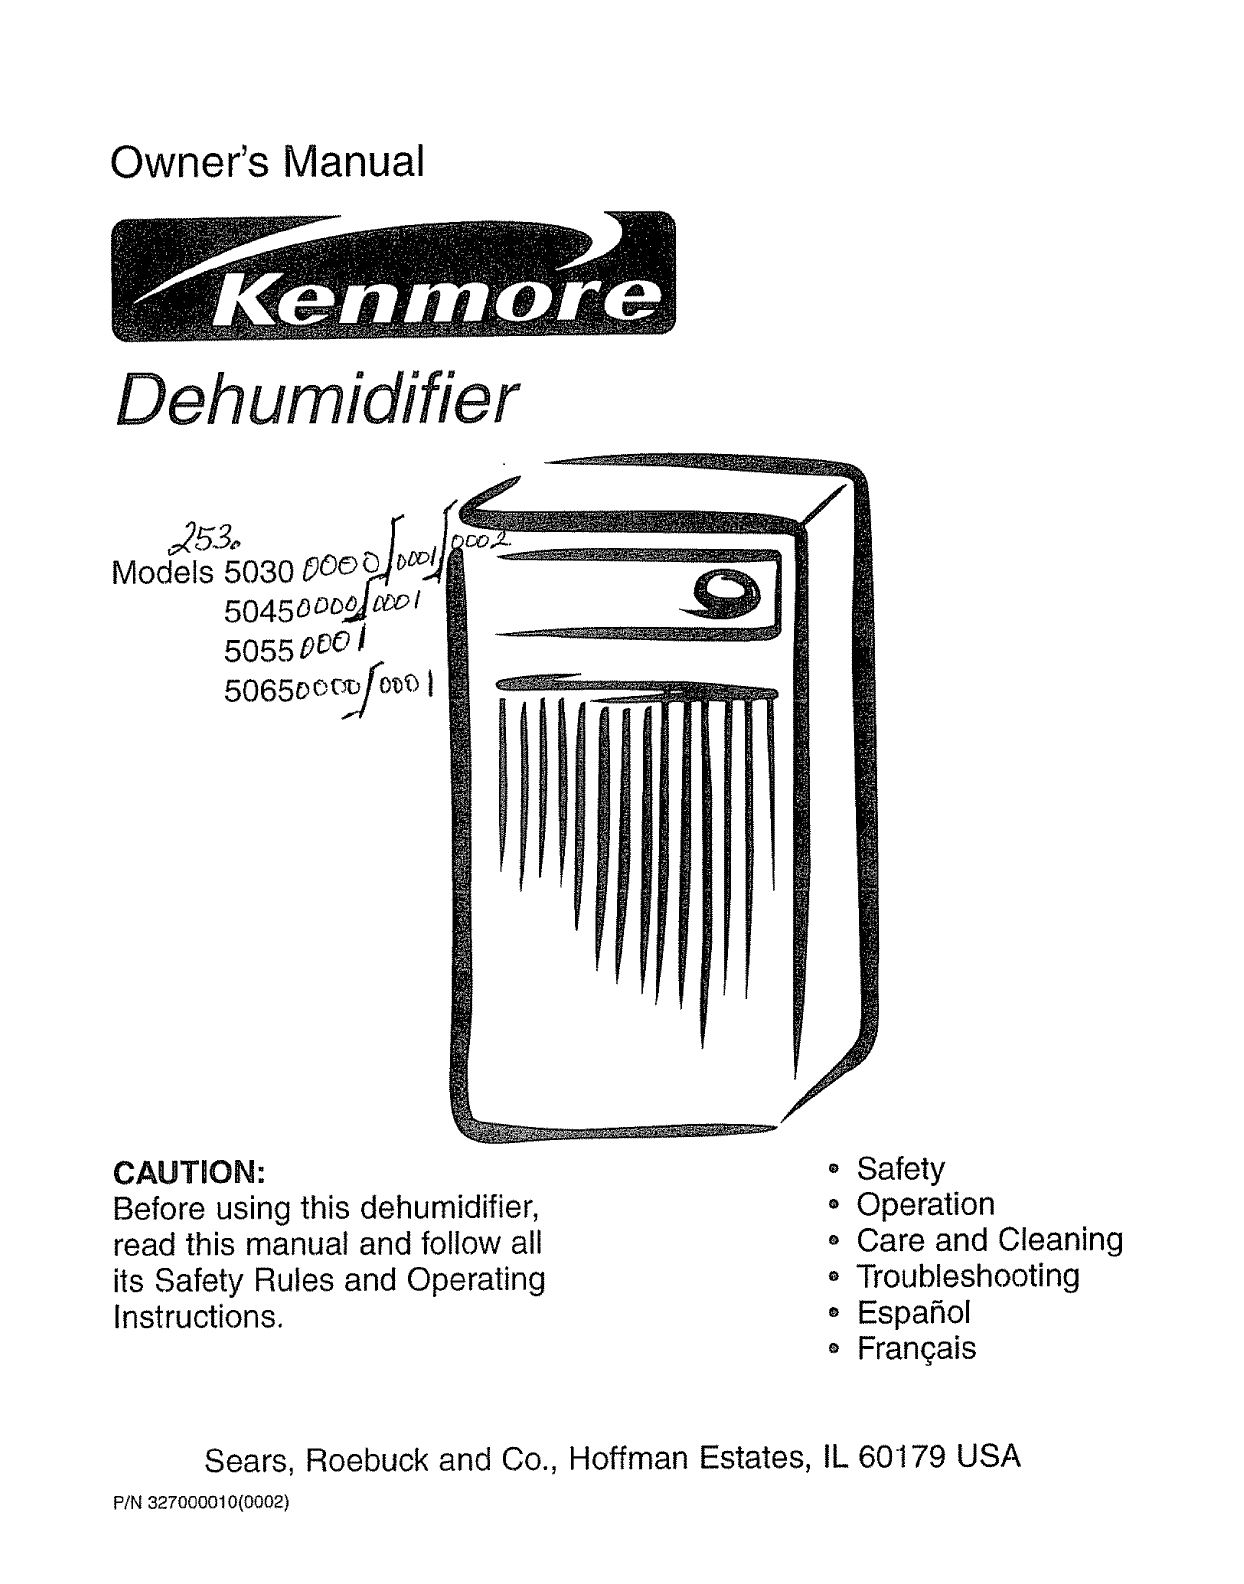 Kenmore Dehumidifier 5030 User Guide ManualsOnline.com #666666